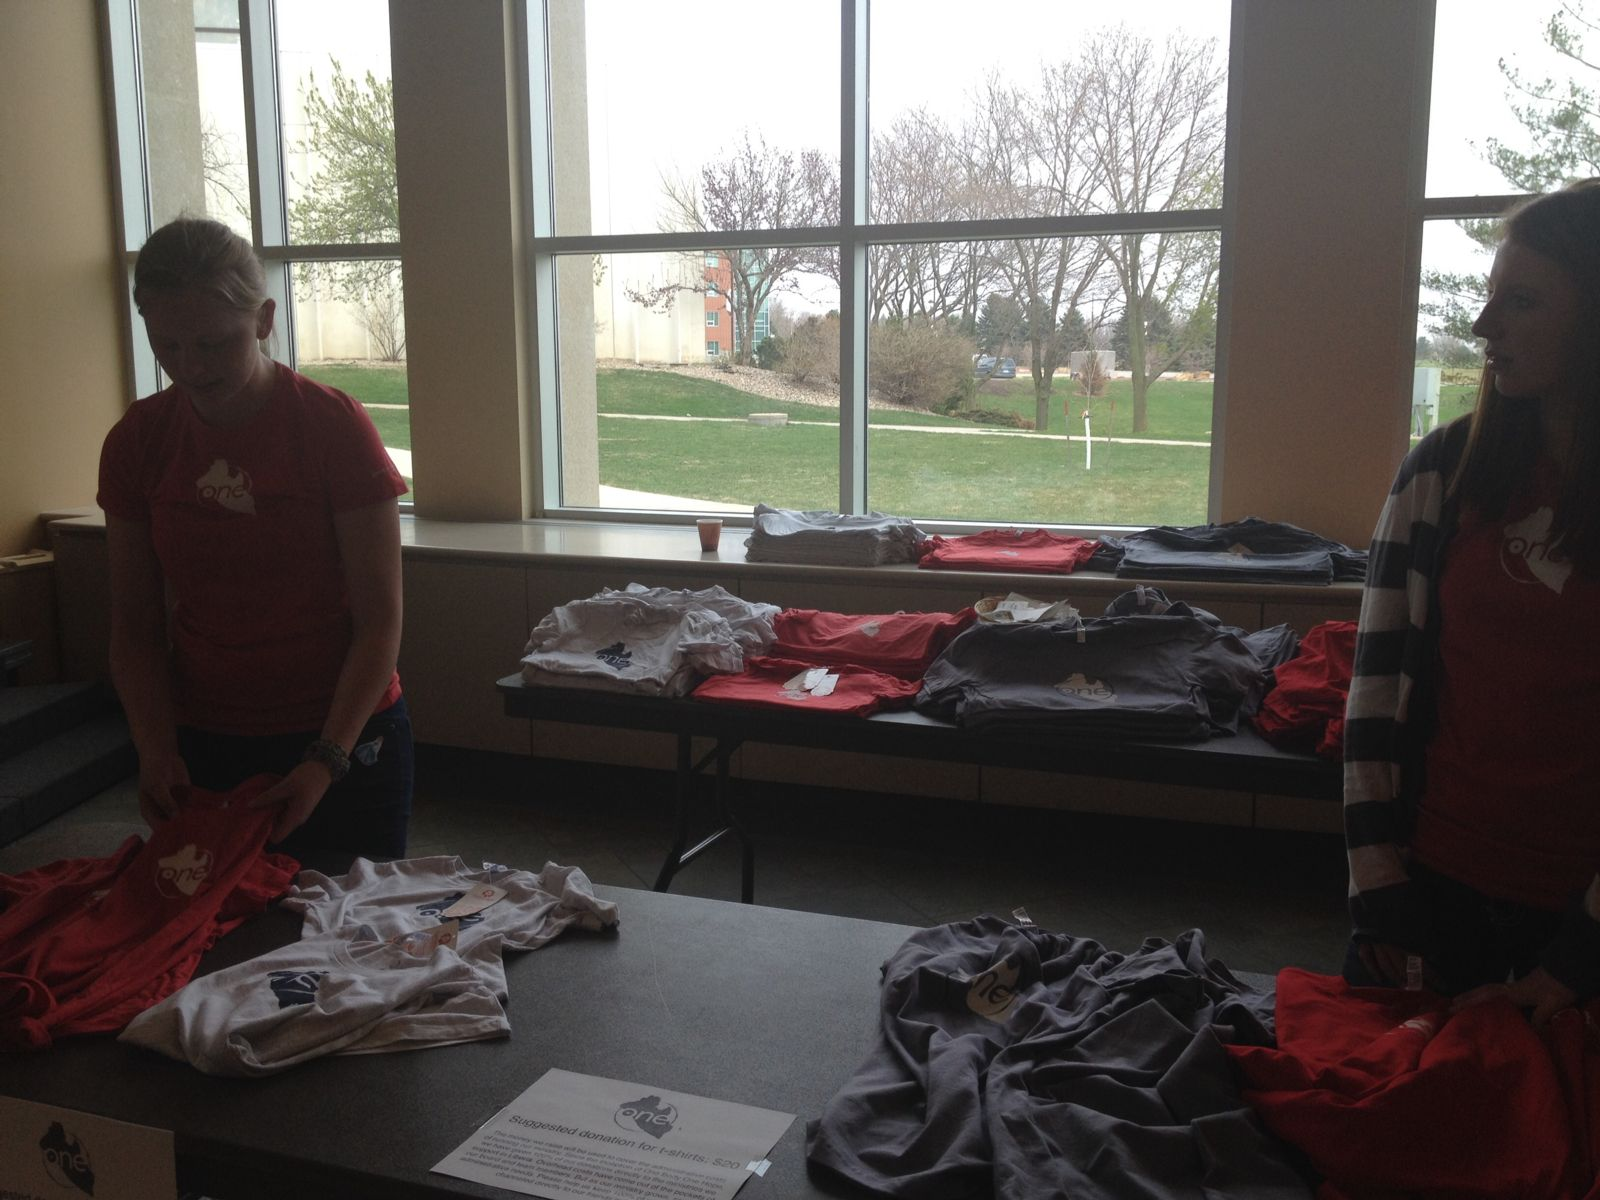 Preparing the t-shirt displays to help cover administration costs, so all donations can go directly to our sister community.